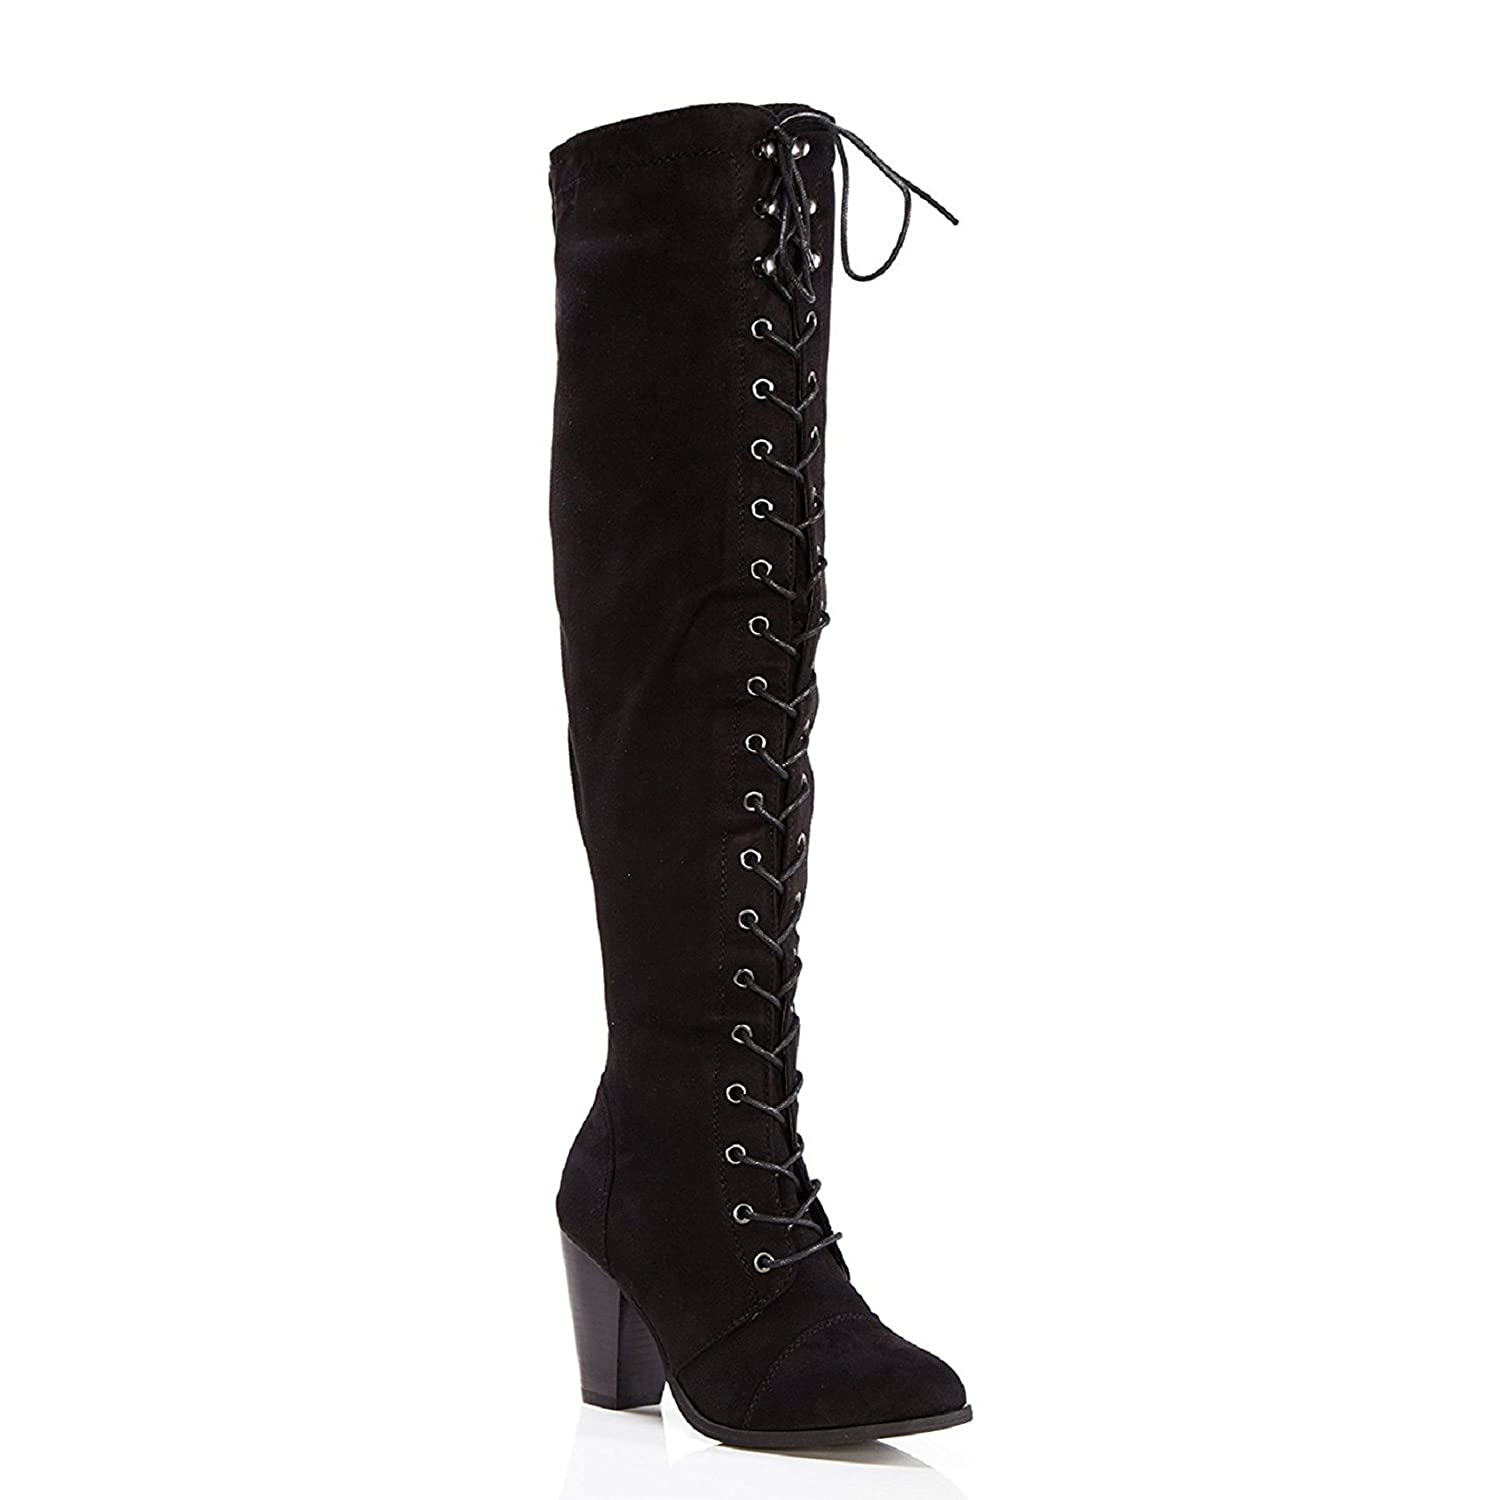 cb762992399 ShoBeautiful Womens Chunky Heel Over The Knee High Riding Boots Lace Up  Corset Thigh High Combat Boots Winter Shoes